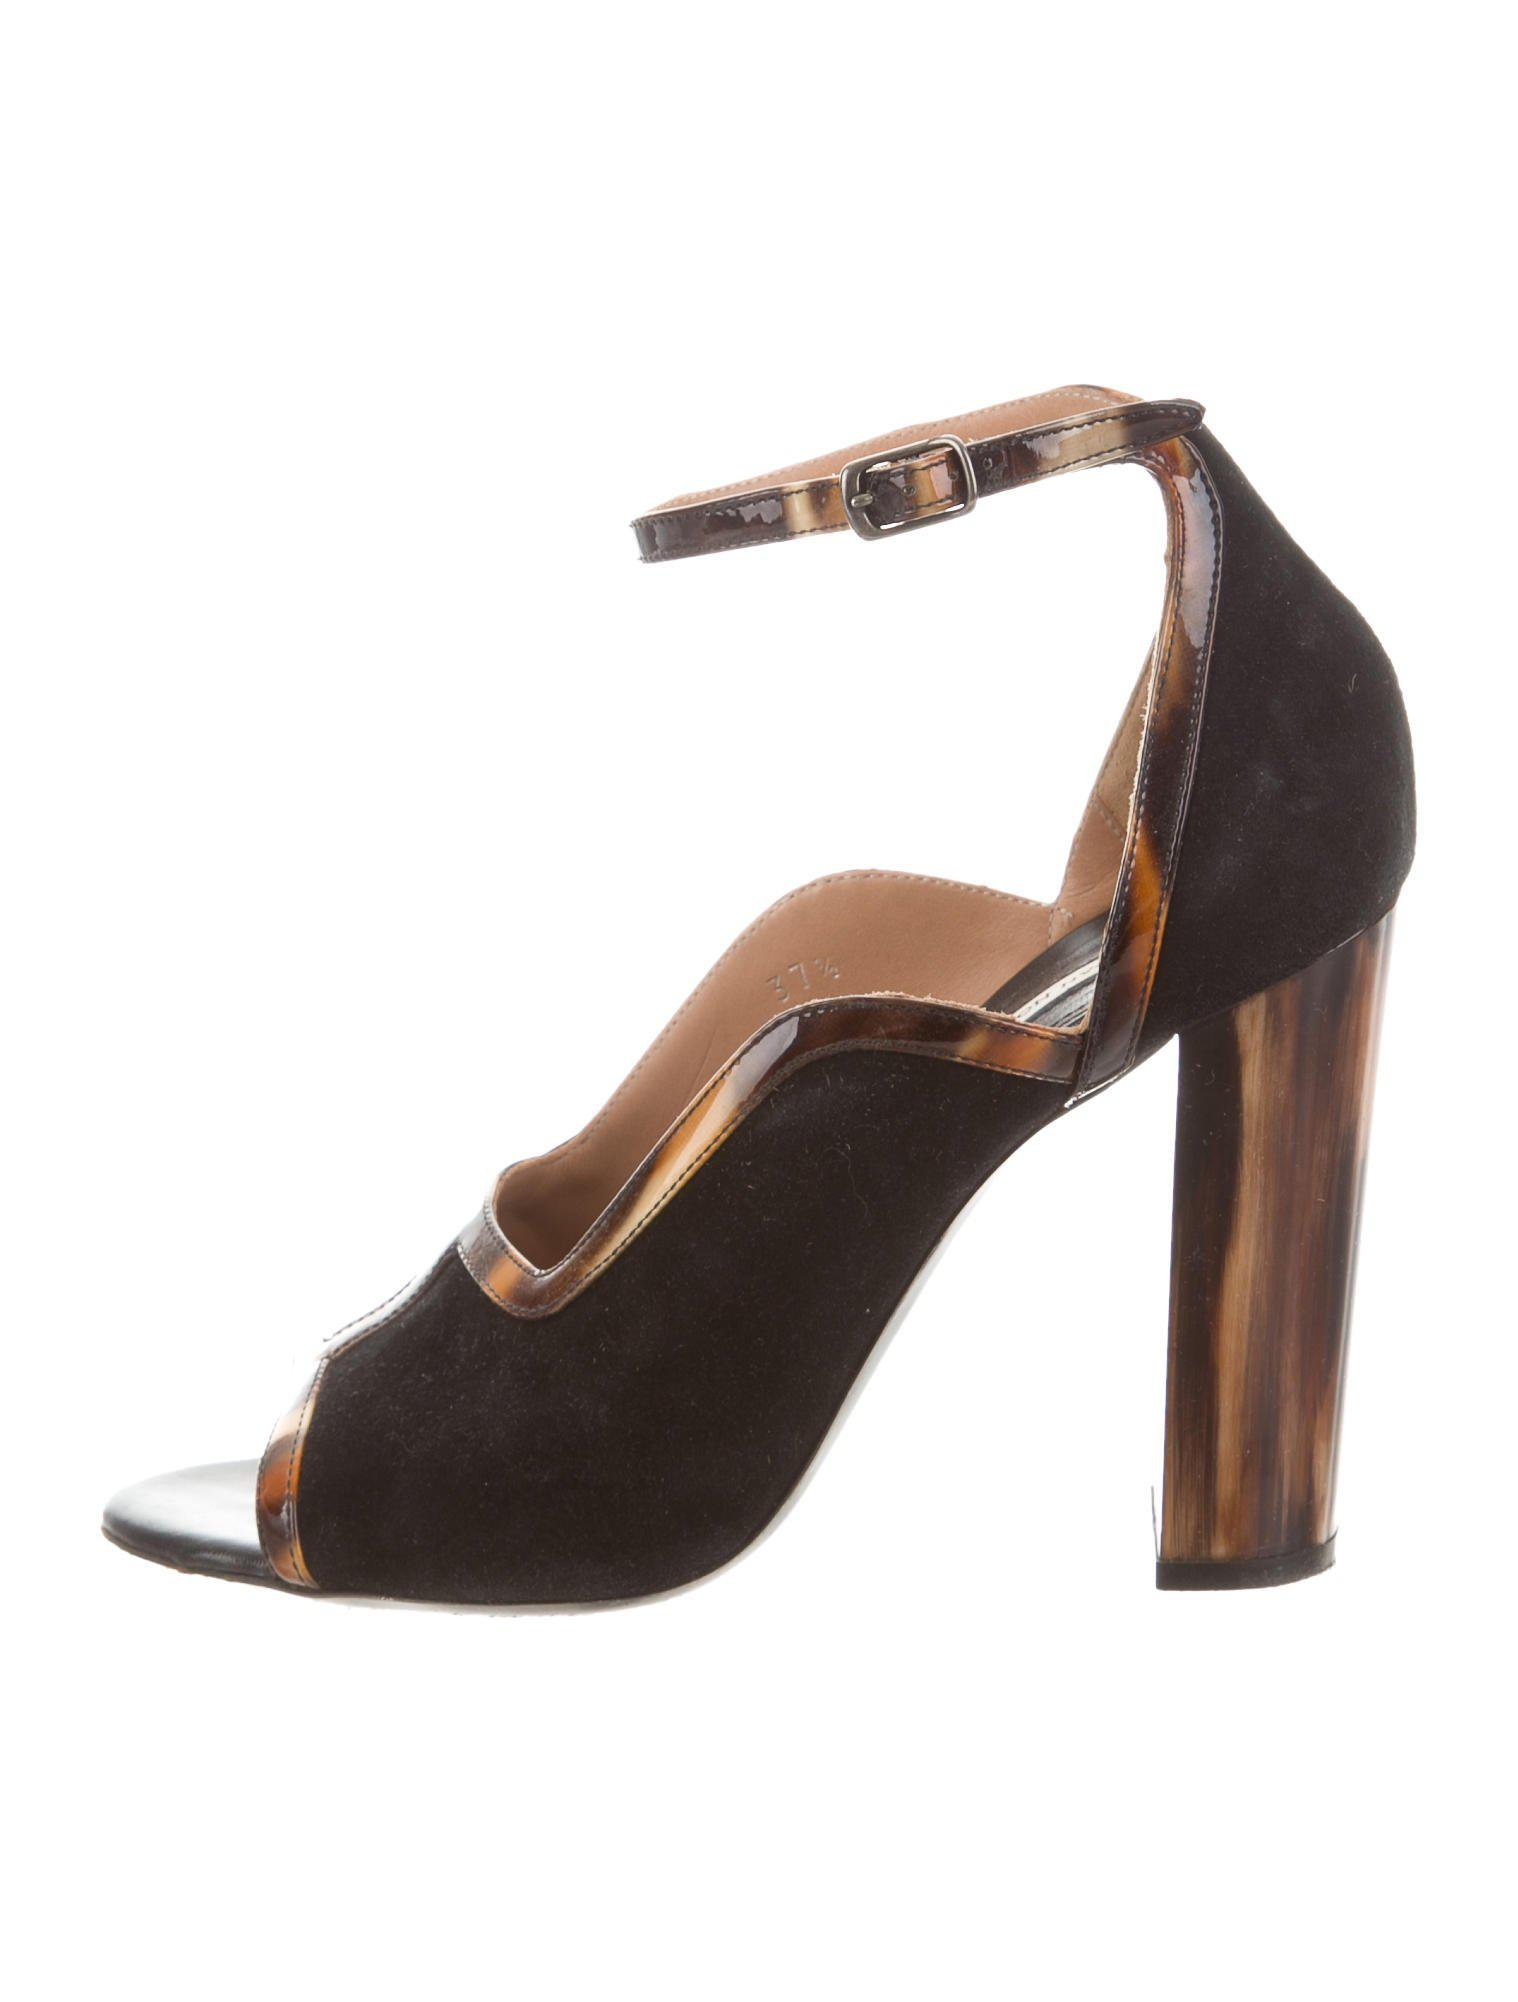 Dries Van Noten Suede Ankle-Strap Pumps cheap sale get authentic dN6OM0nA9I